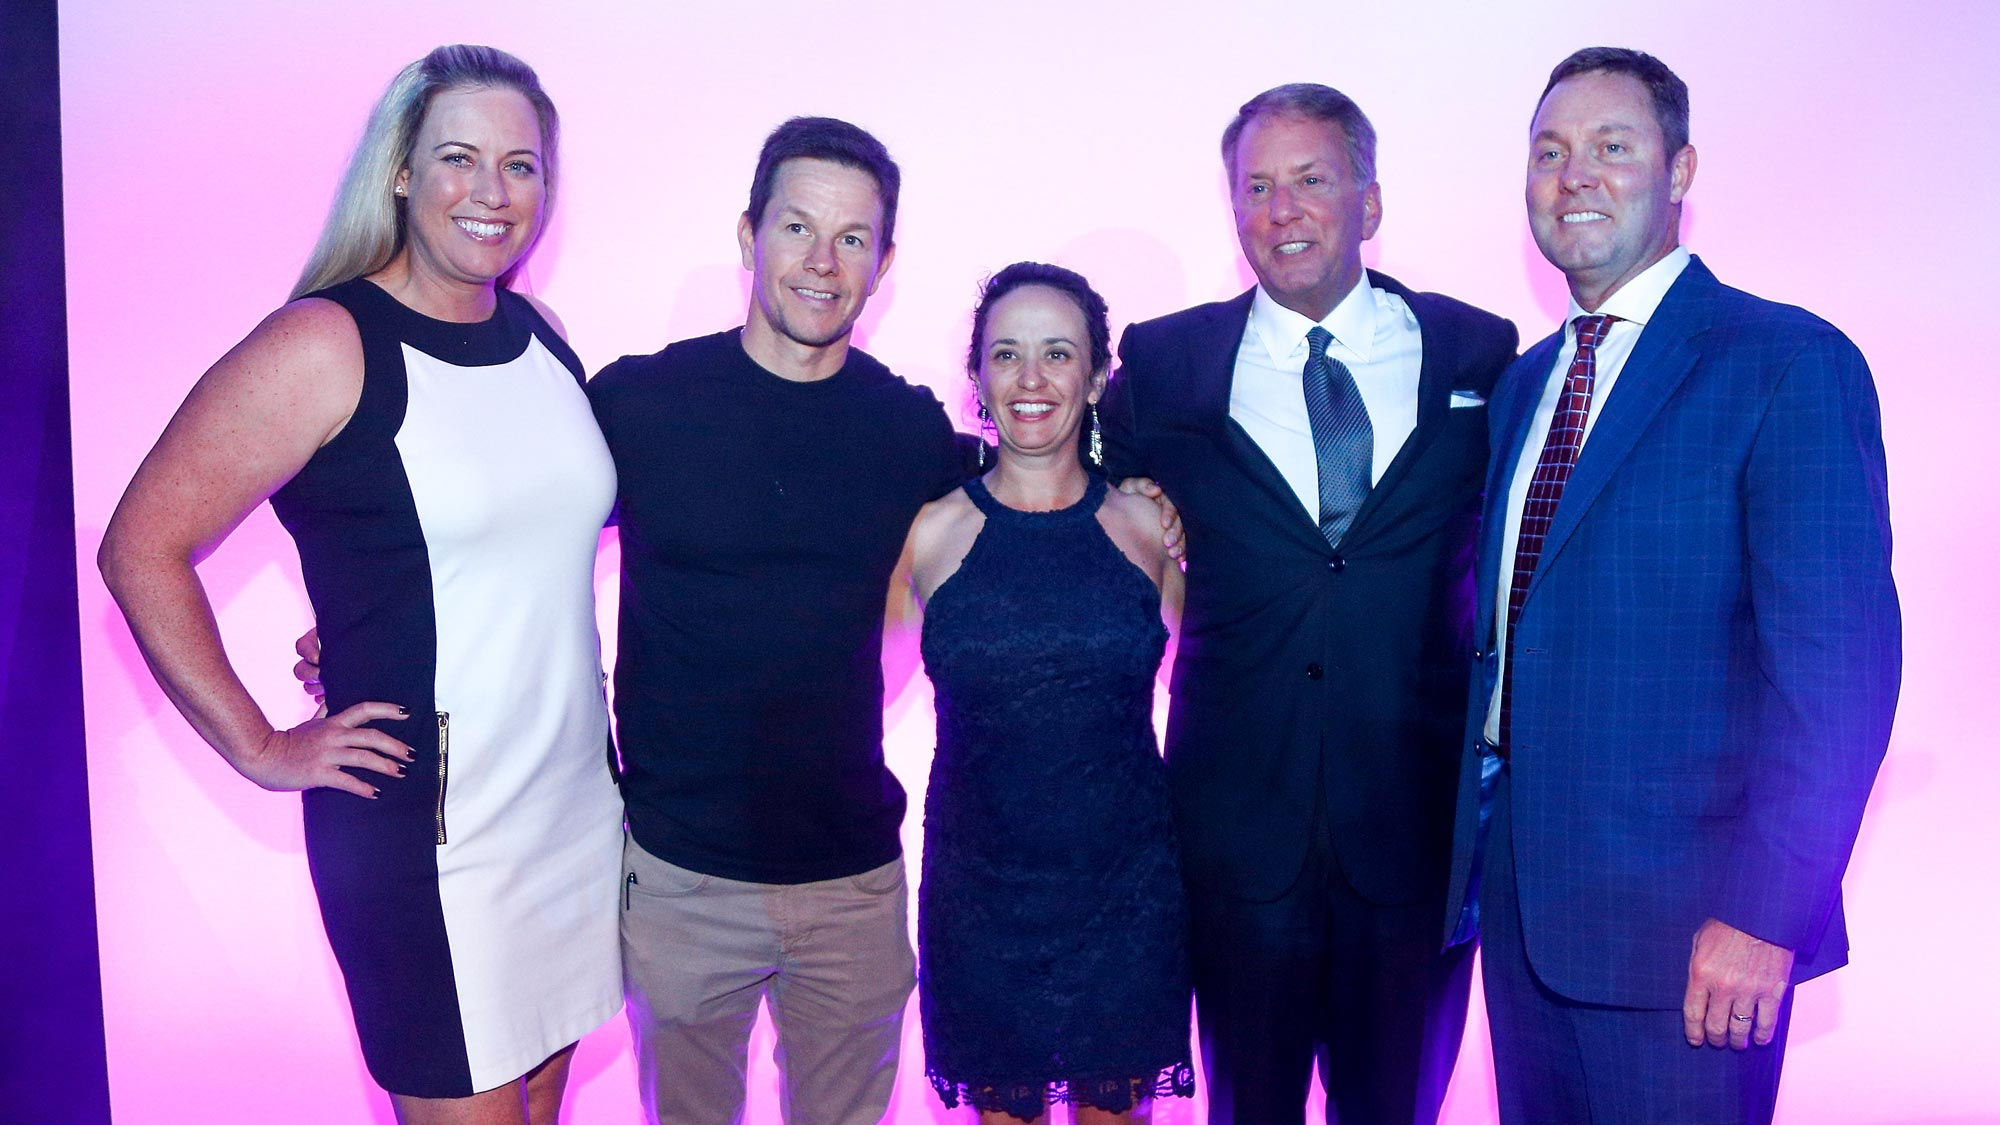 (left to right) LPGA golfer Brittany Lincicome, Actor Mark Wahlberg, LPGA golfer Mo Martin, CME Group Chairman and CEO Terry Duffy and LPGA commissioner Michael Whan pose for a photo after changes for the 2019 LPGA CME Group Tour Championship were announced at the Ritz Carlton Hotel